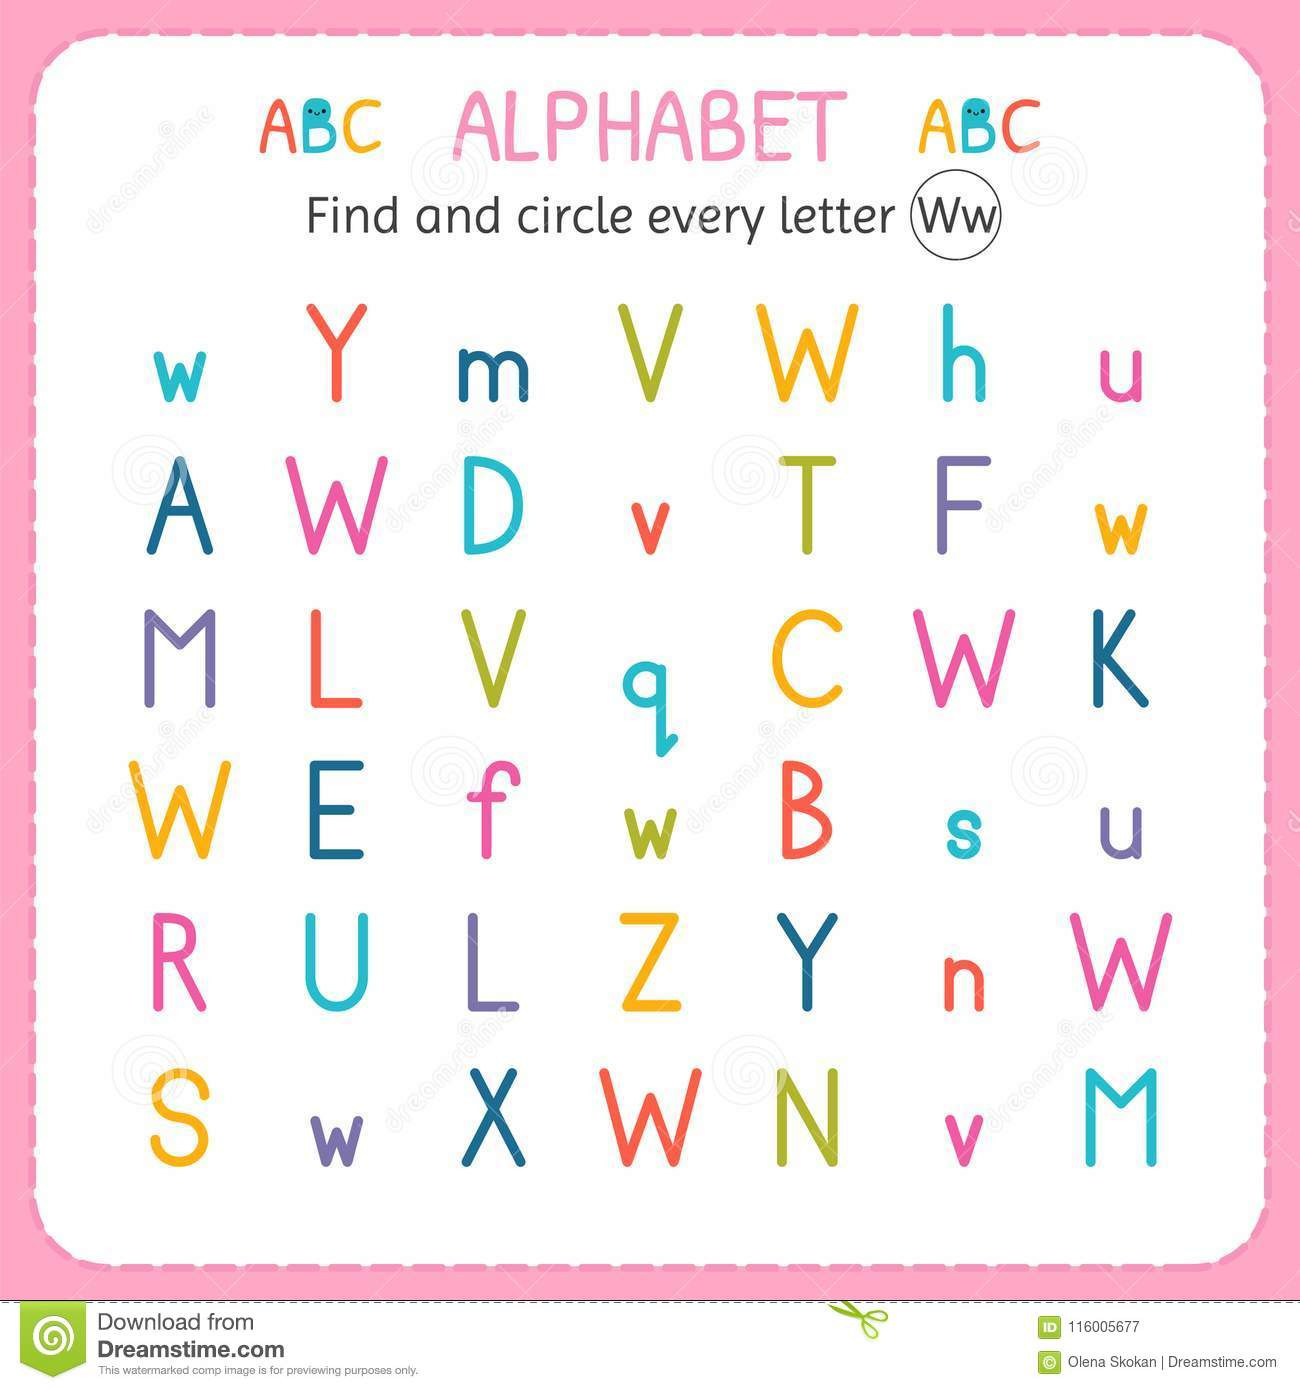 Letter W Worksheets for Preschoolers Find and Circle Every Letter W Worksheet for Kindergarten